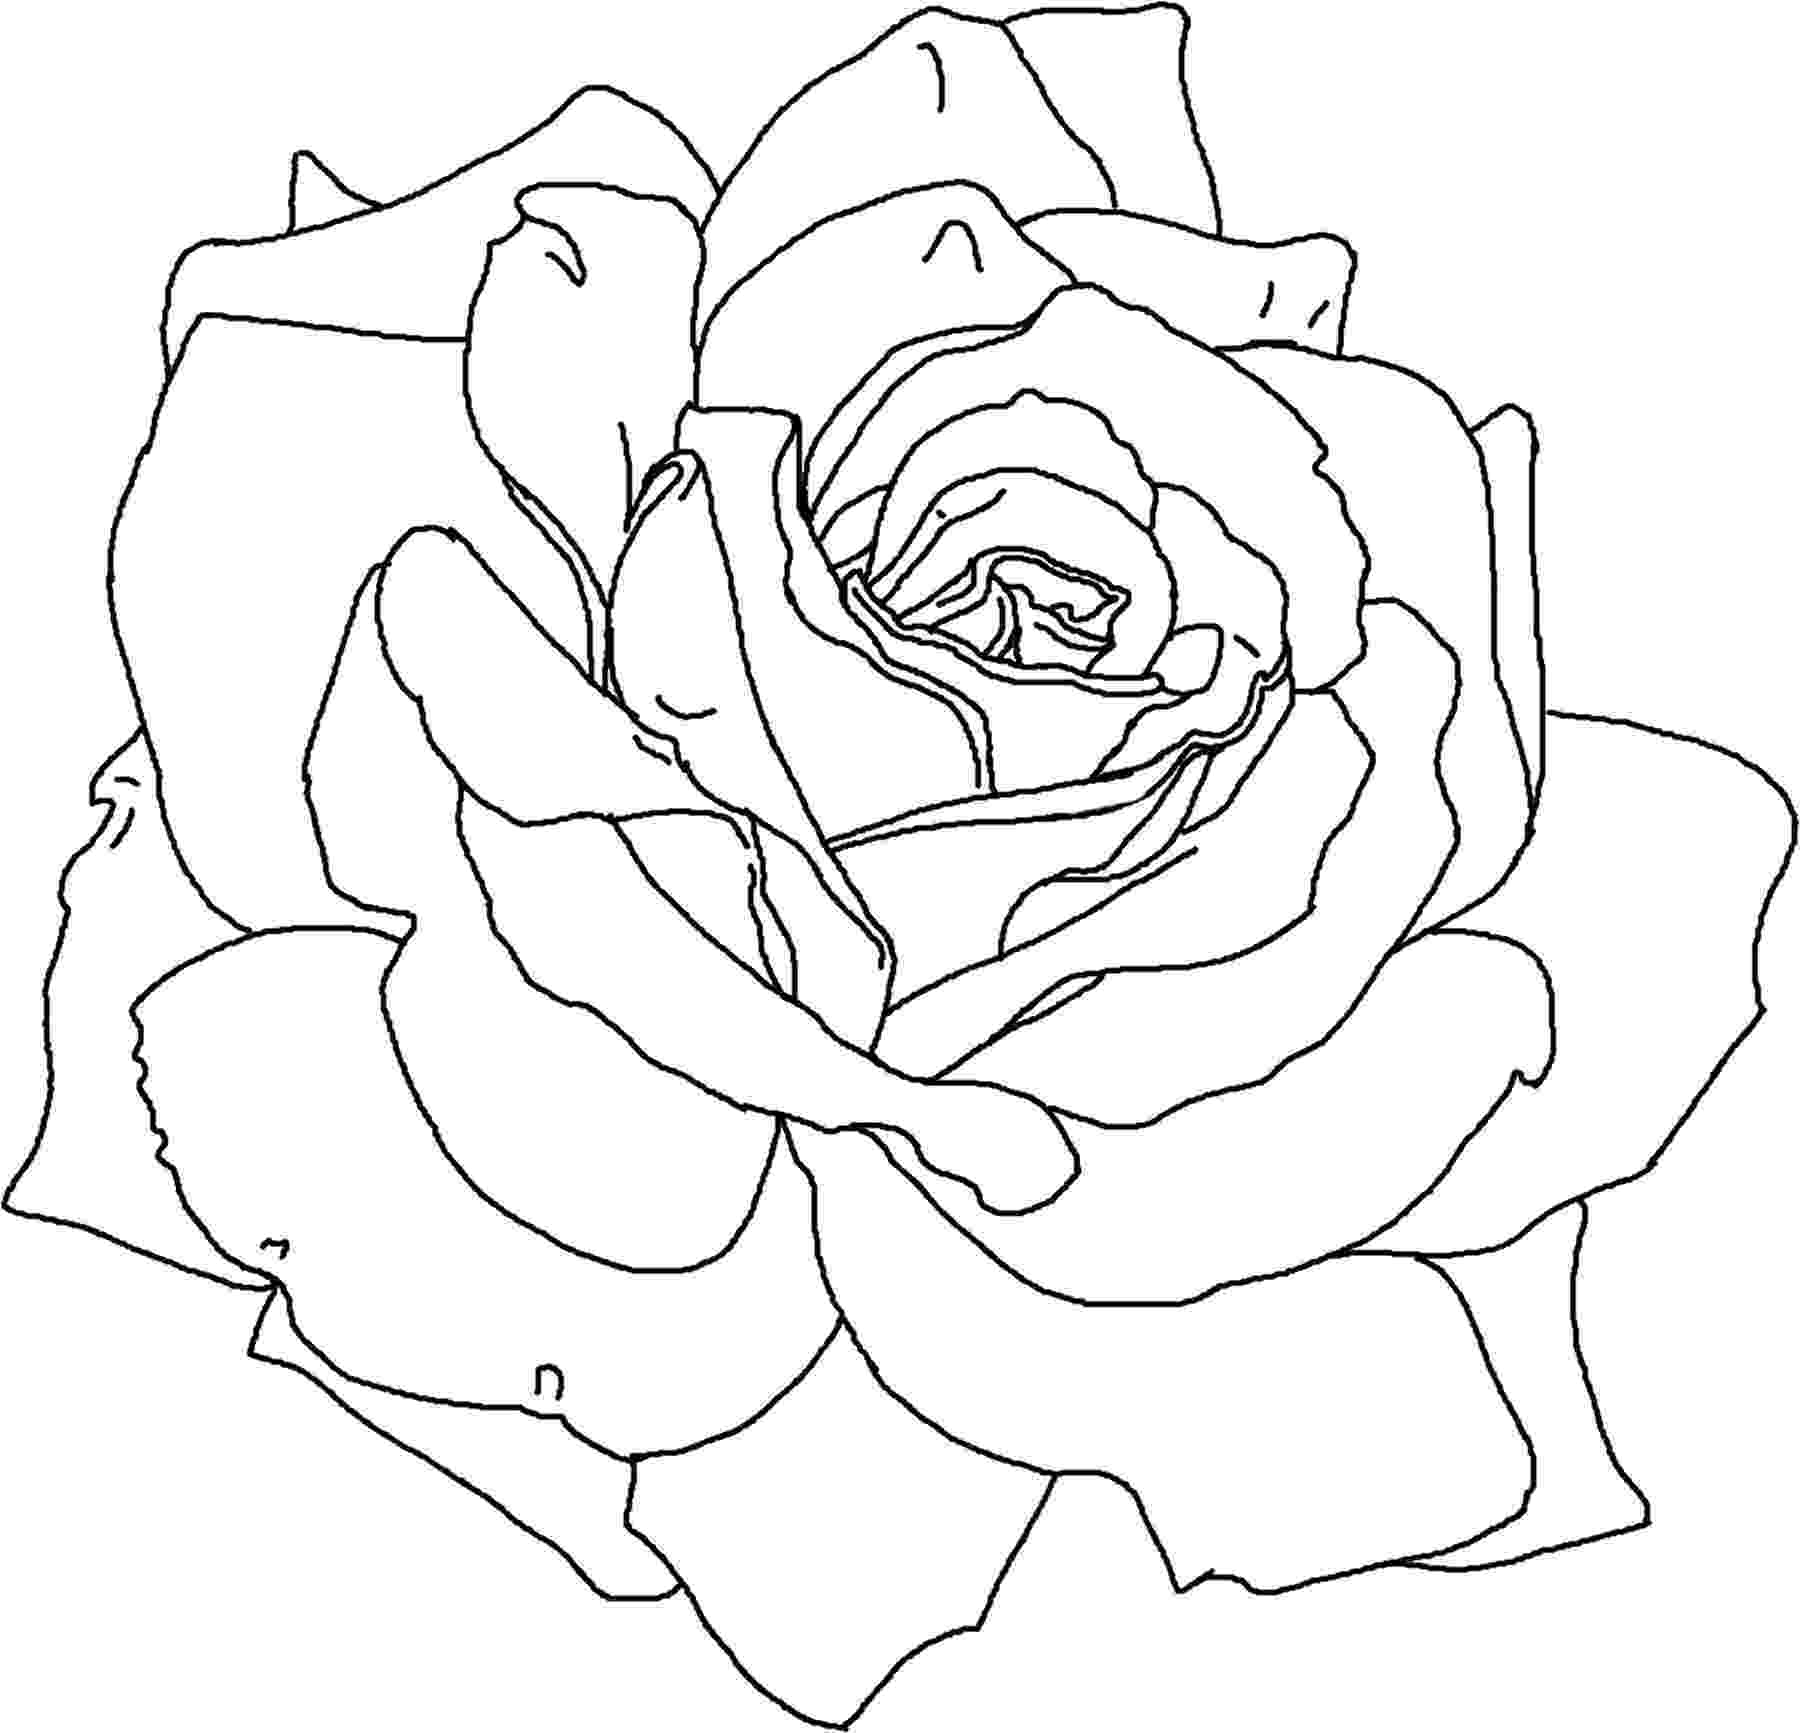 rose flower coloring page free printable roses coloring pages for kids rose page coloring flower